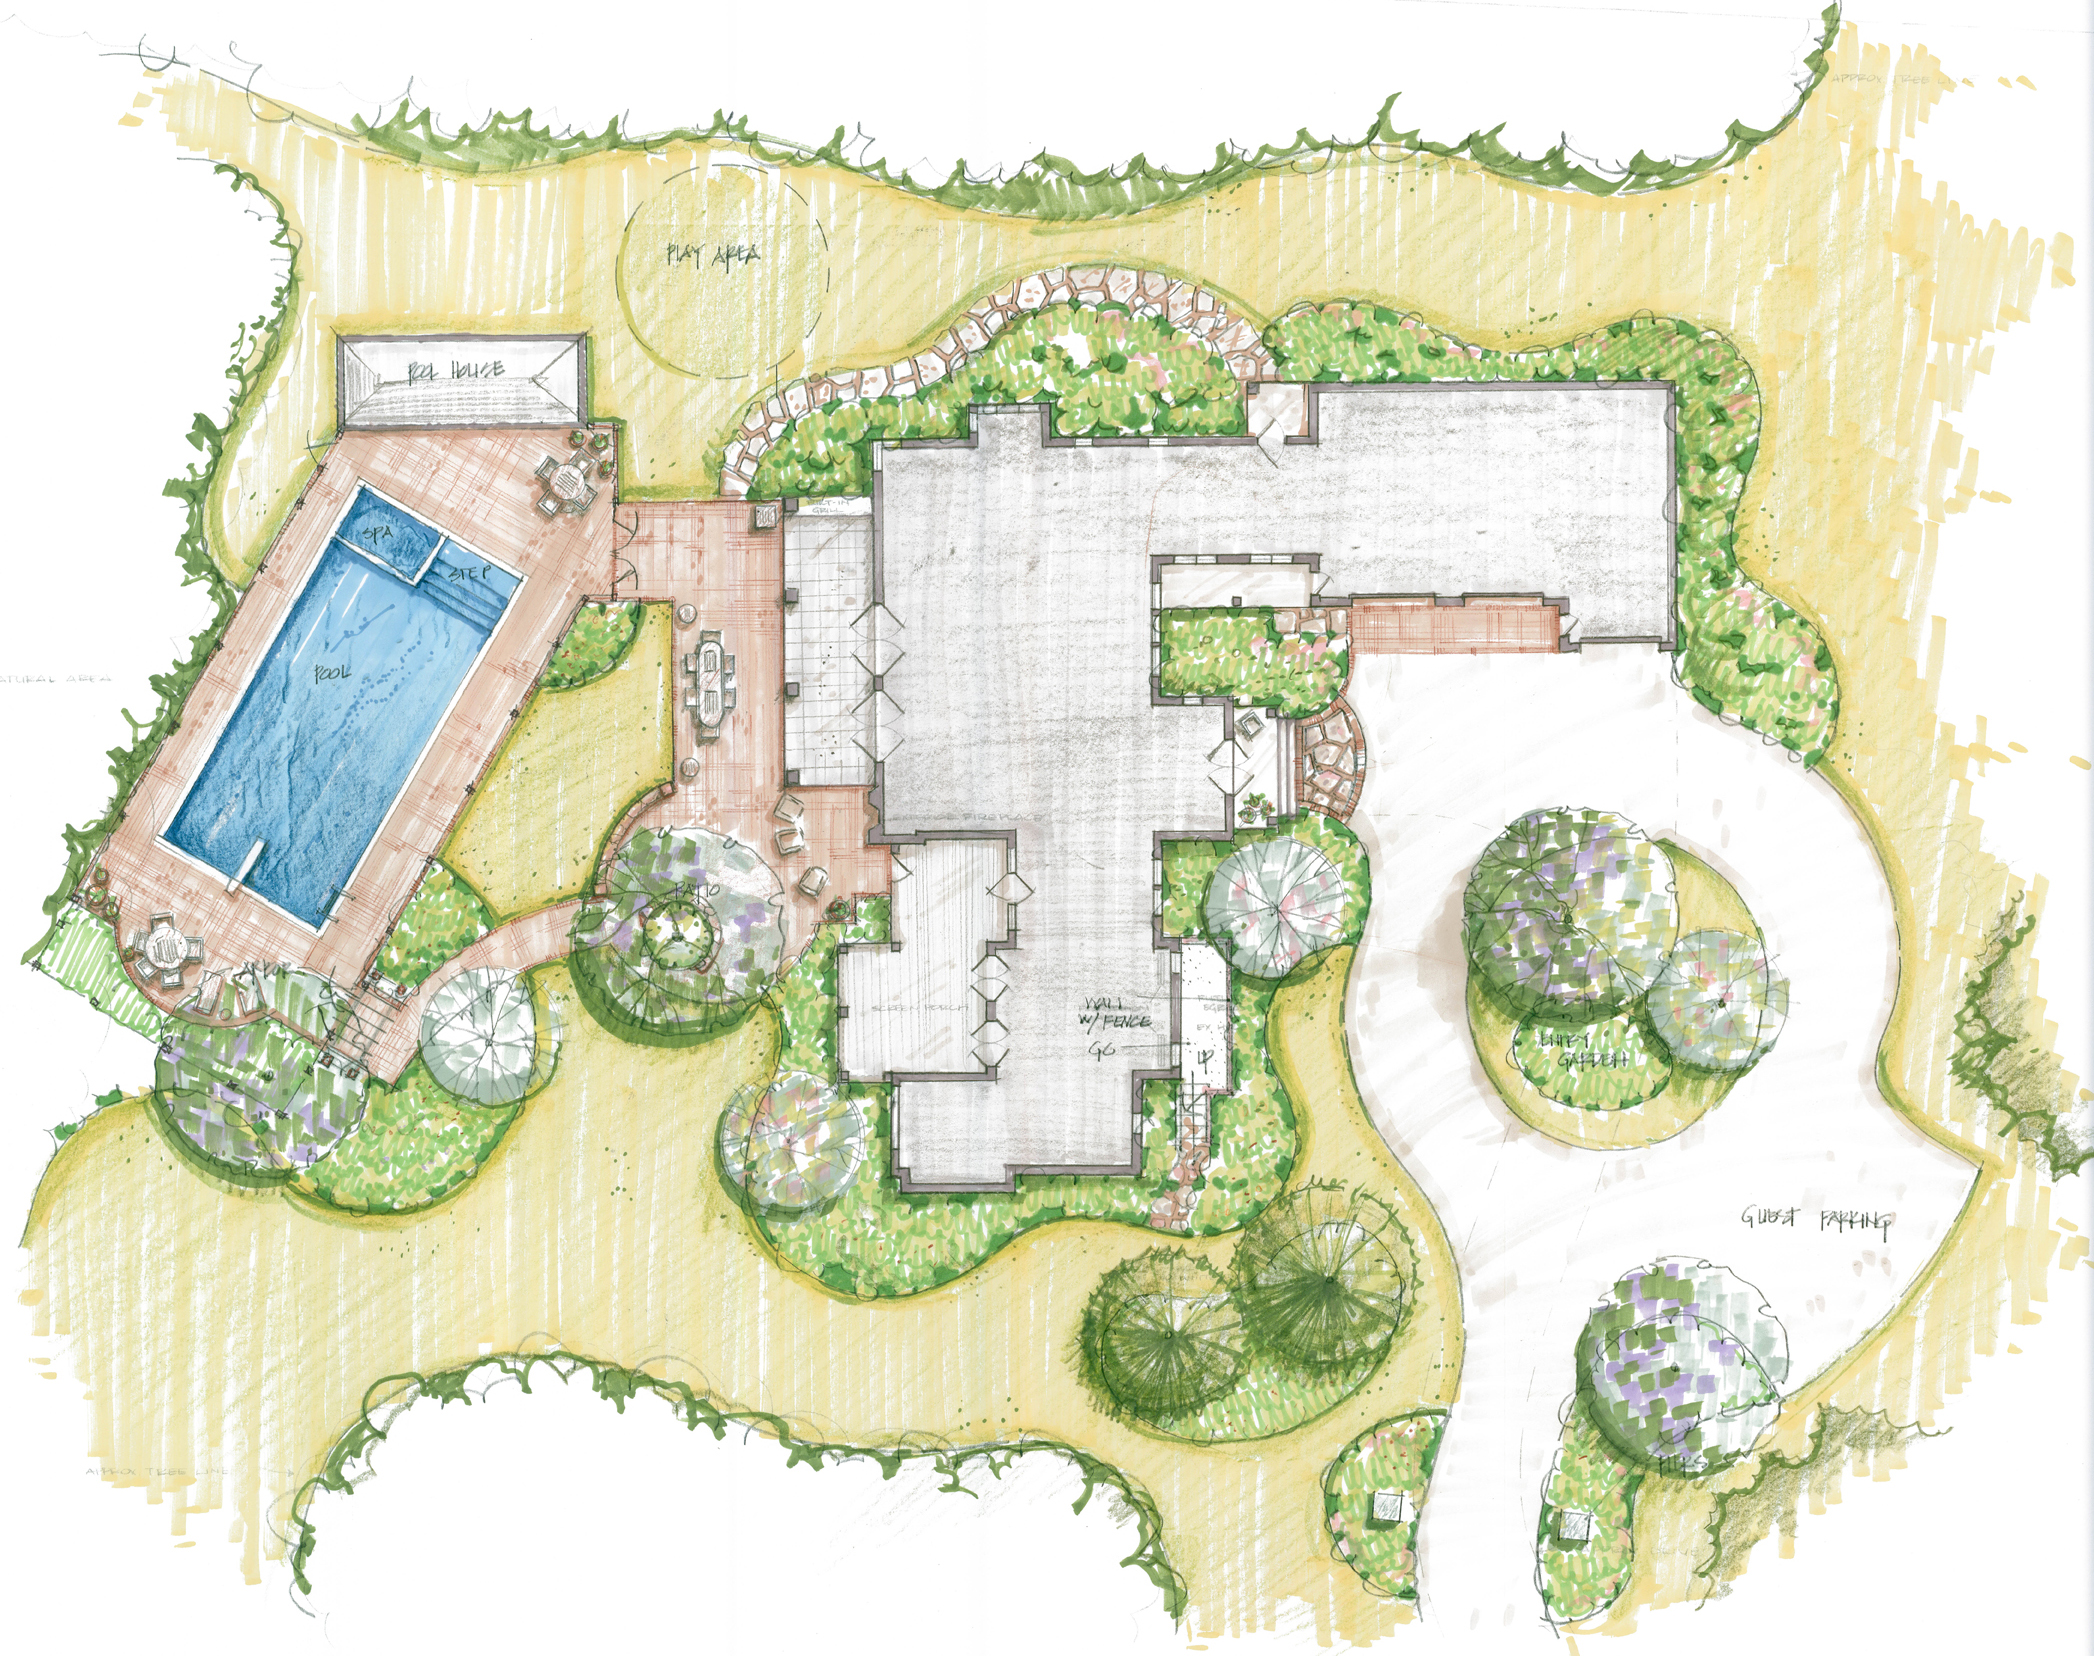 5 simple reasons to plan your landscape design landscape for Simple landscape plans